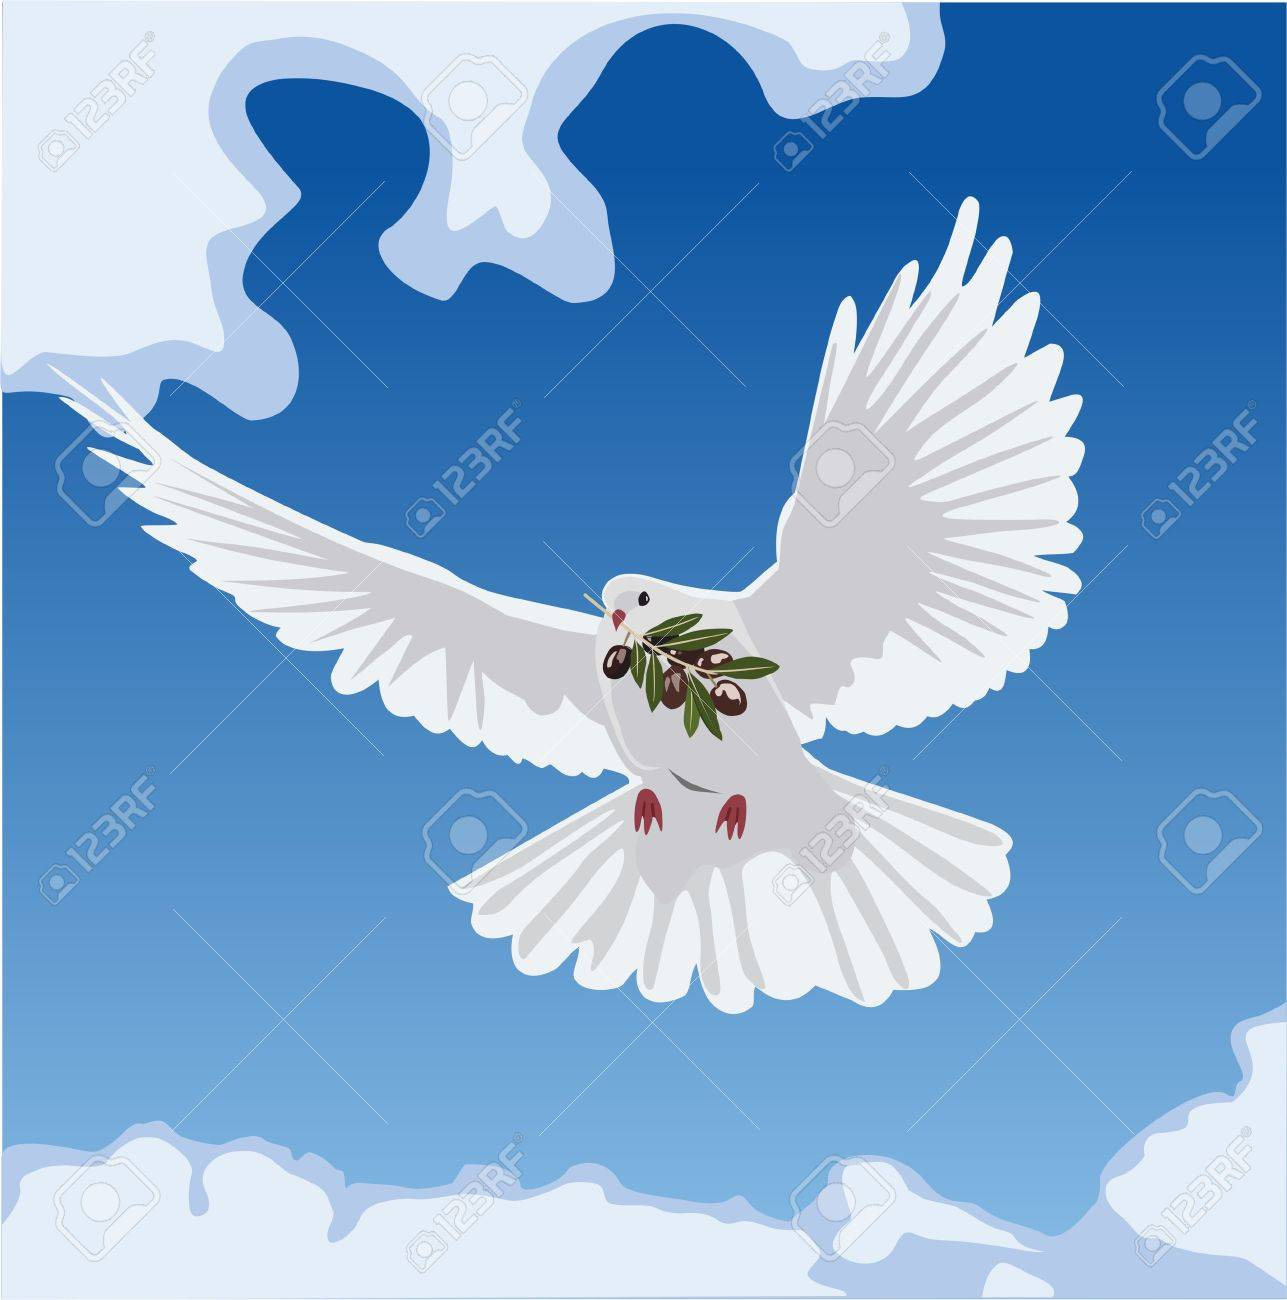 Catholic baptism stock photos royalty free business images dove with olive branch biocorpaavc Image collections